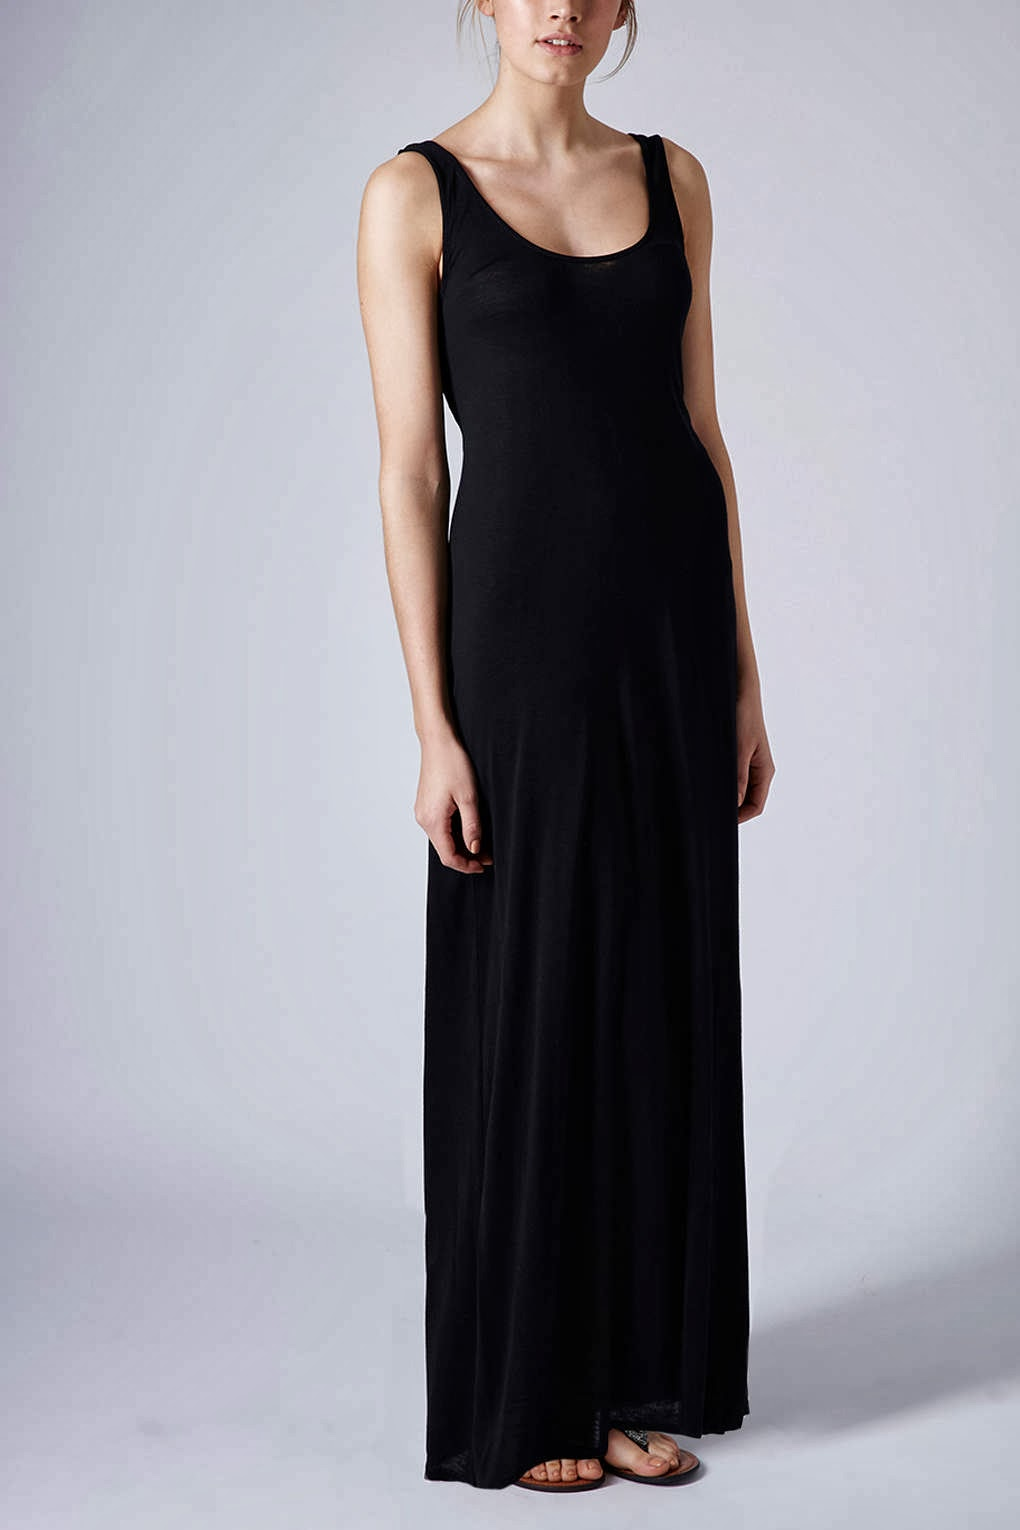 topshop black maxi dress